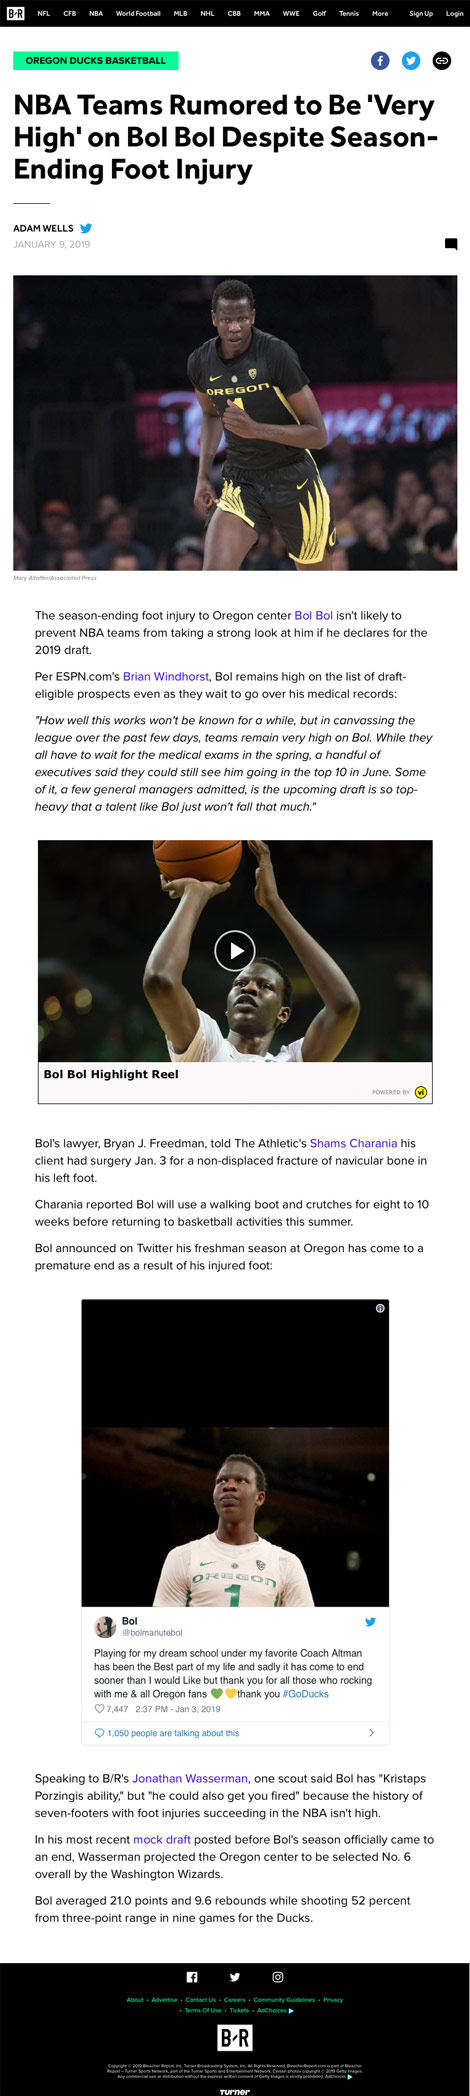 NBA Teams Rumored to Be 'Very High' on Bol Bol Despite Season-Ending Foot Injury - article by BleacherReport.com